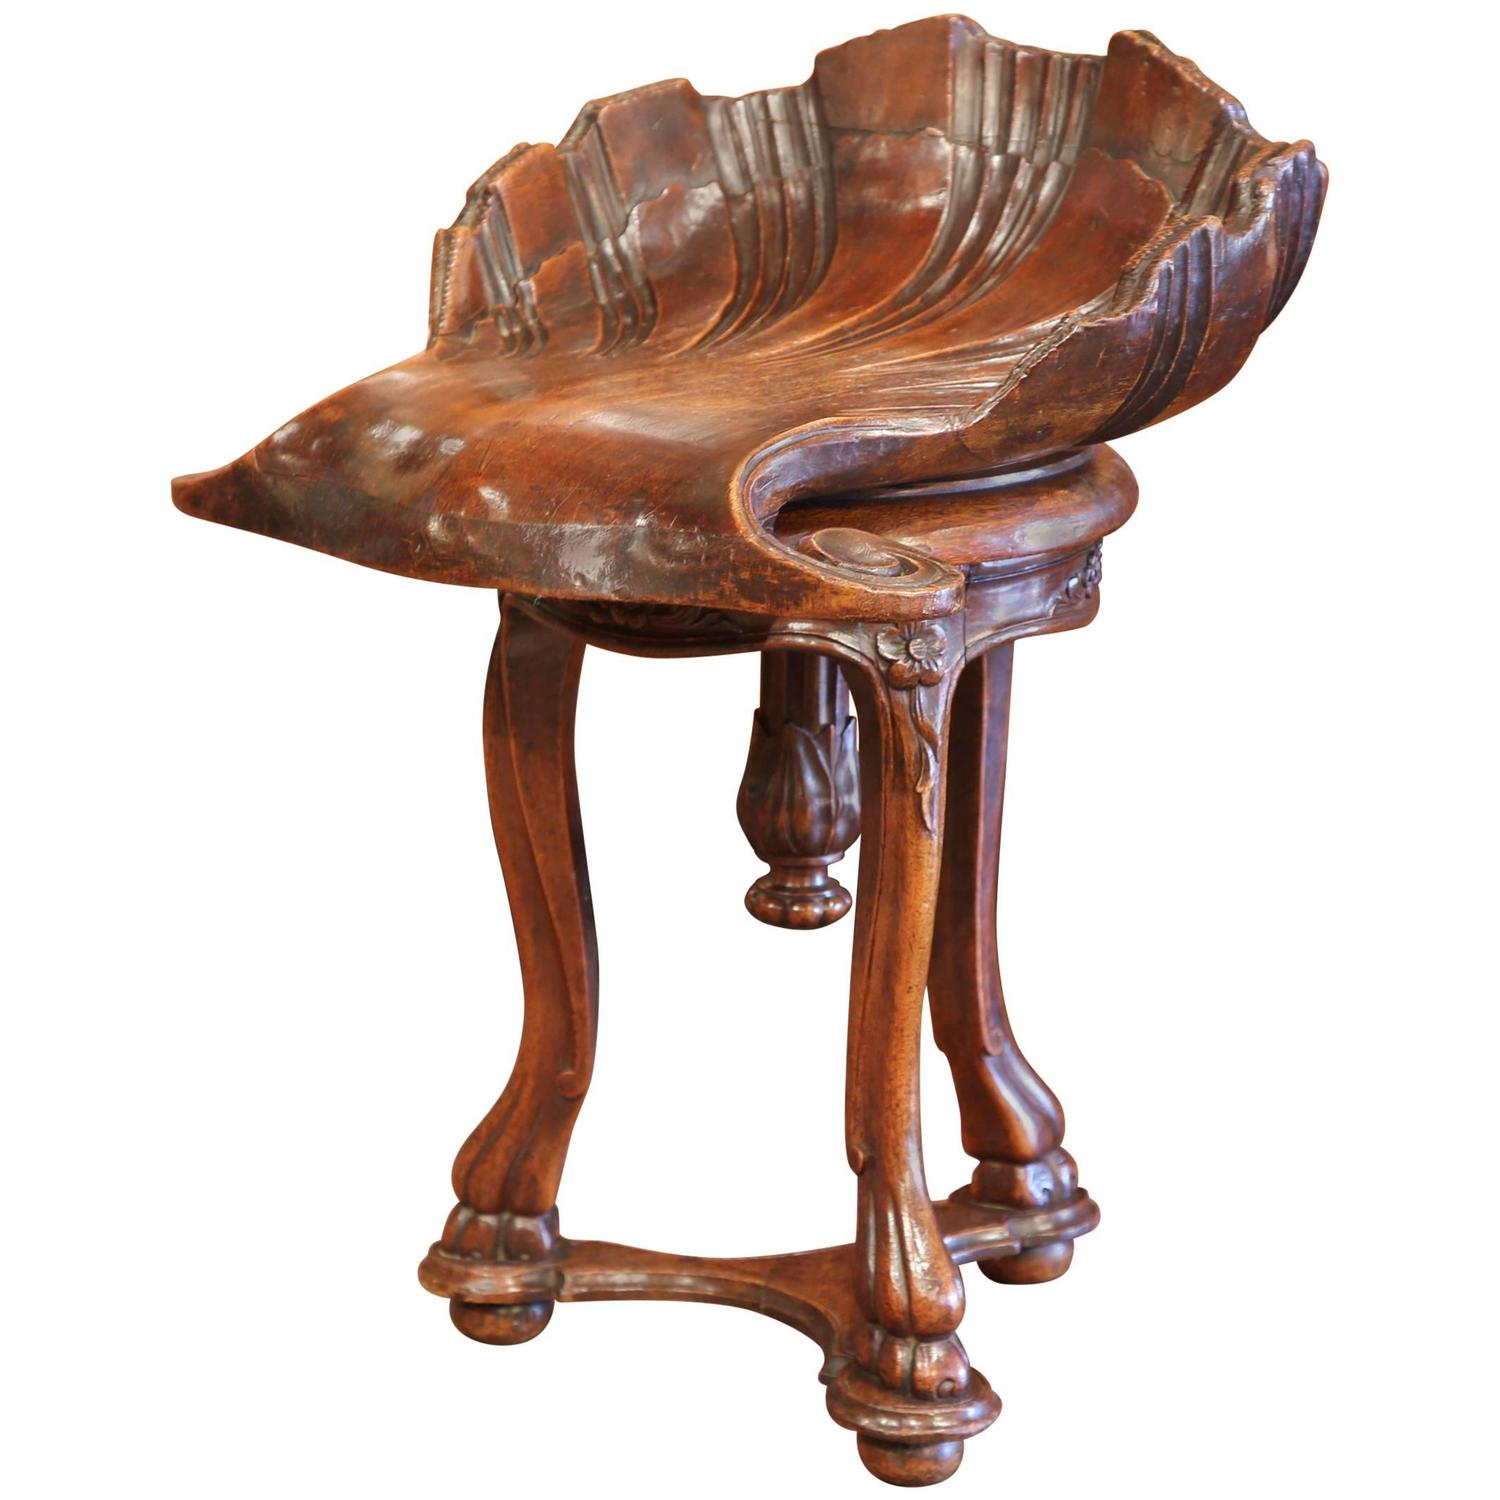 19th Century, French Carved Walnut Adjustable Shell Shaped Piano Stool